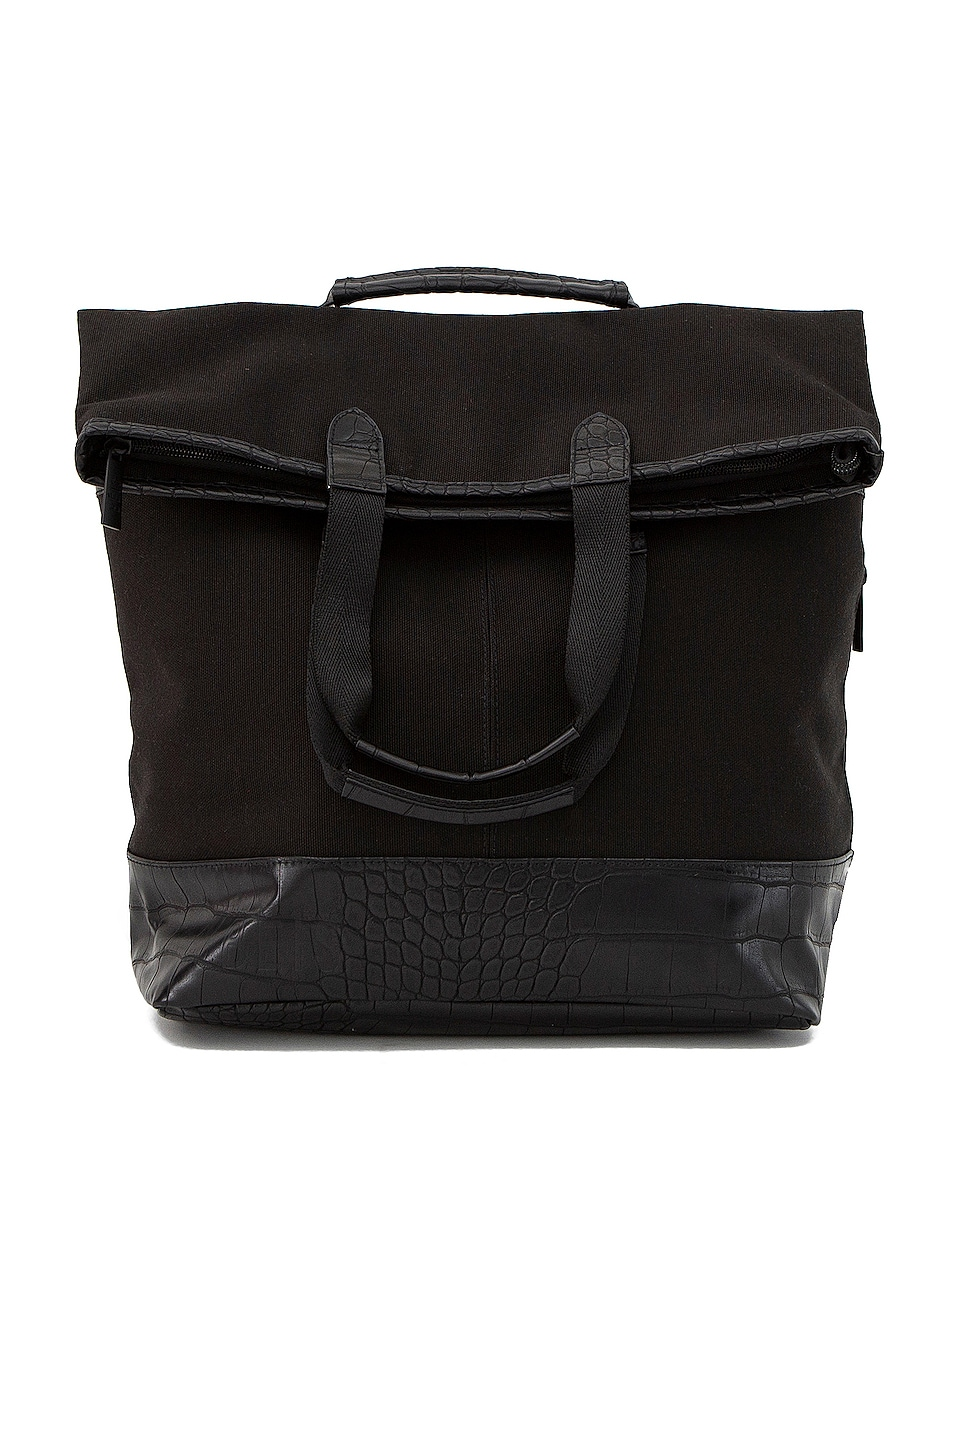 BEIS Convertible Backpack in Black & Croc Trim